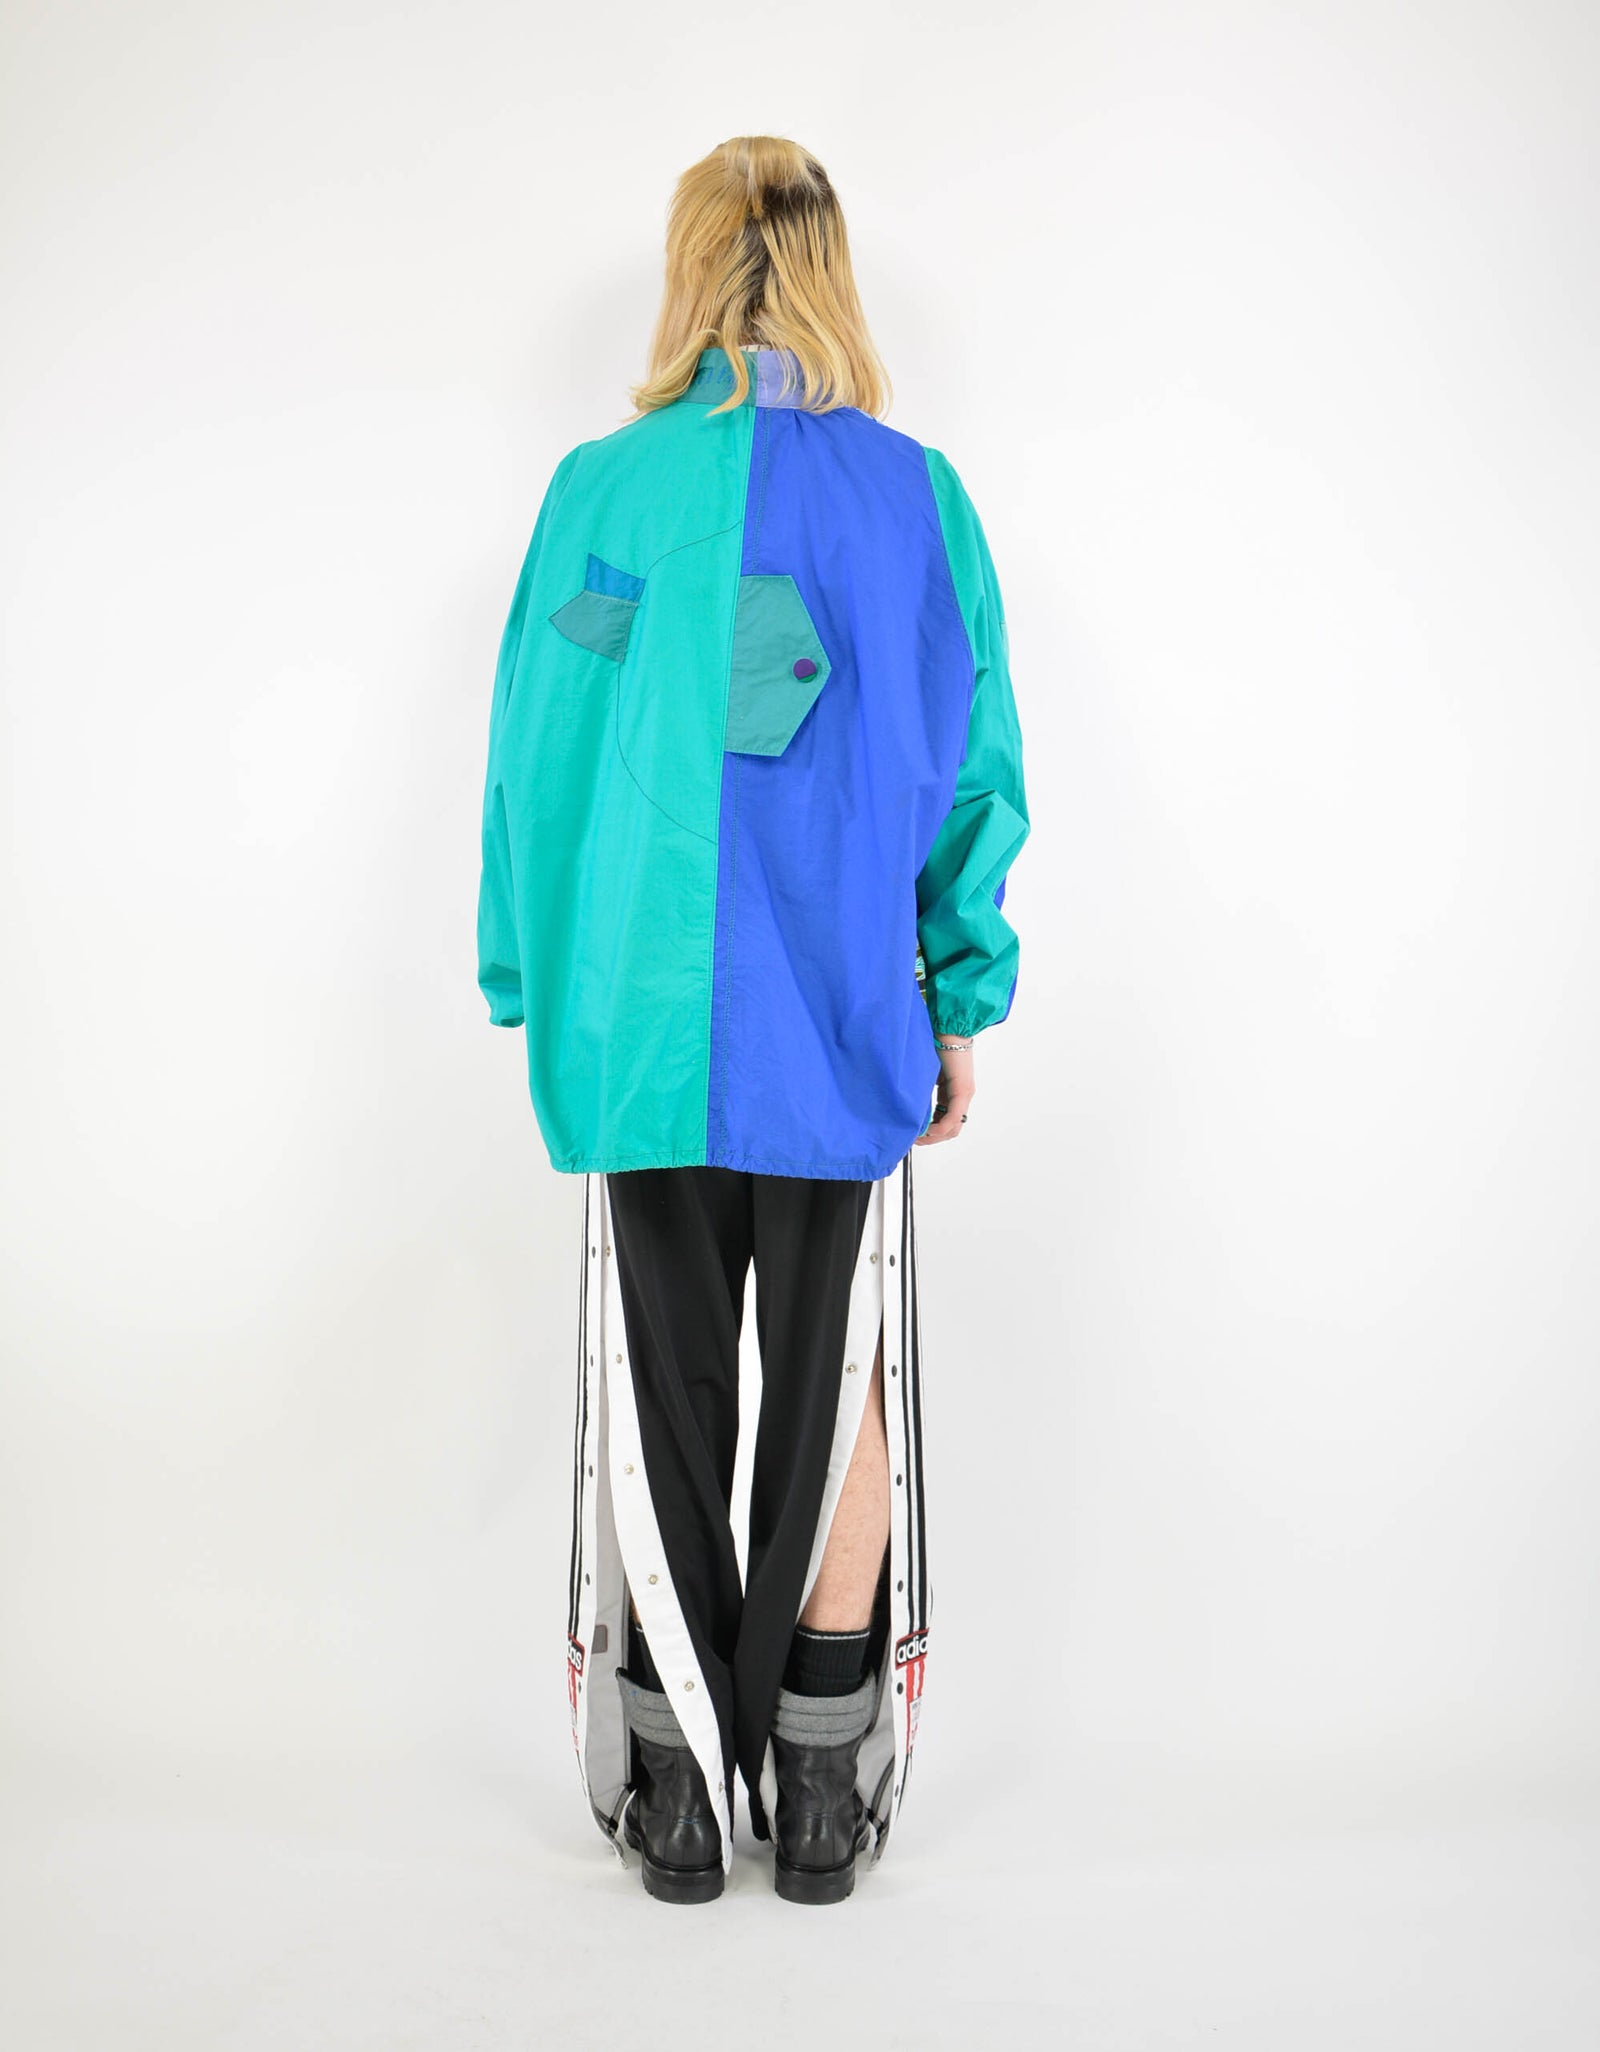 90s poly jacket - PICKNWEIGHT - VINTAGE KILO STORE